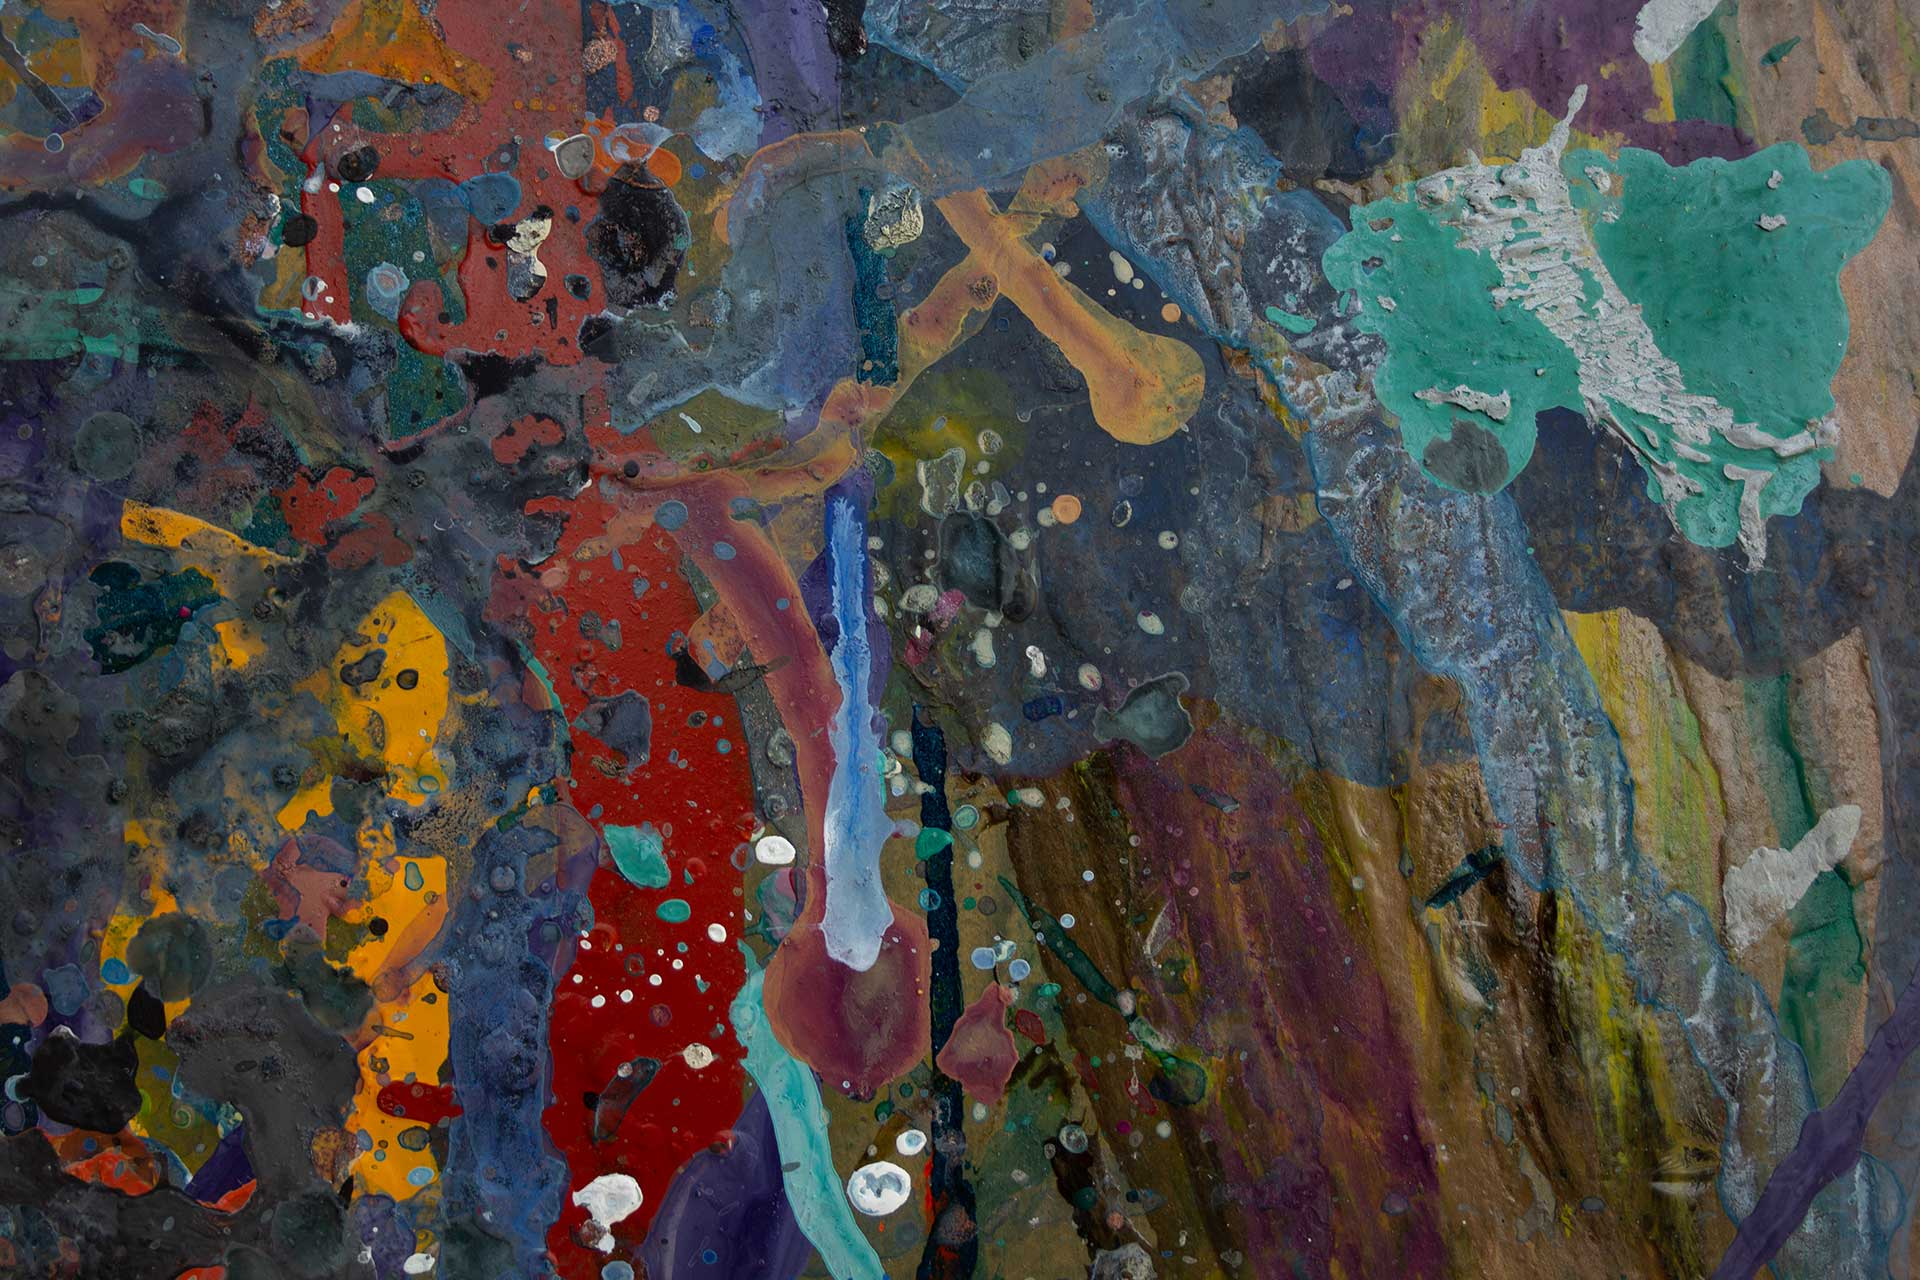 Abstract expressionism painting - Fight of the aliens #1 - Detail 2